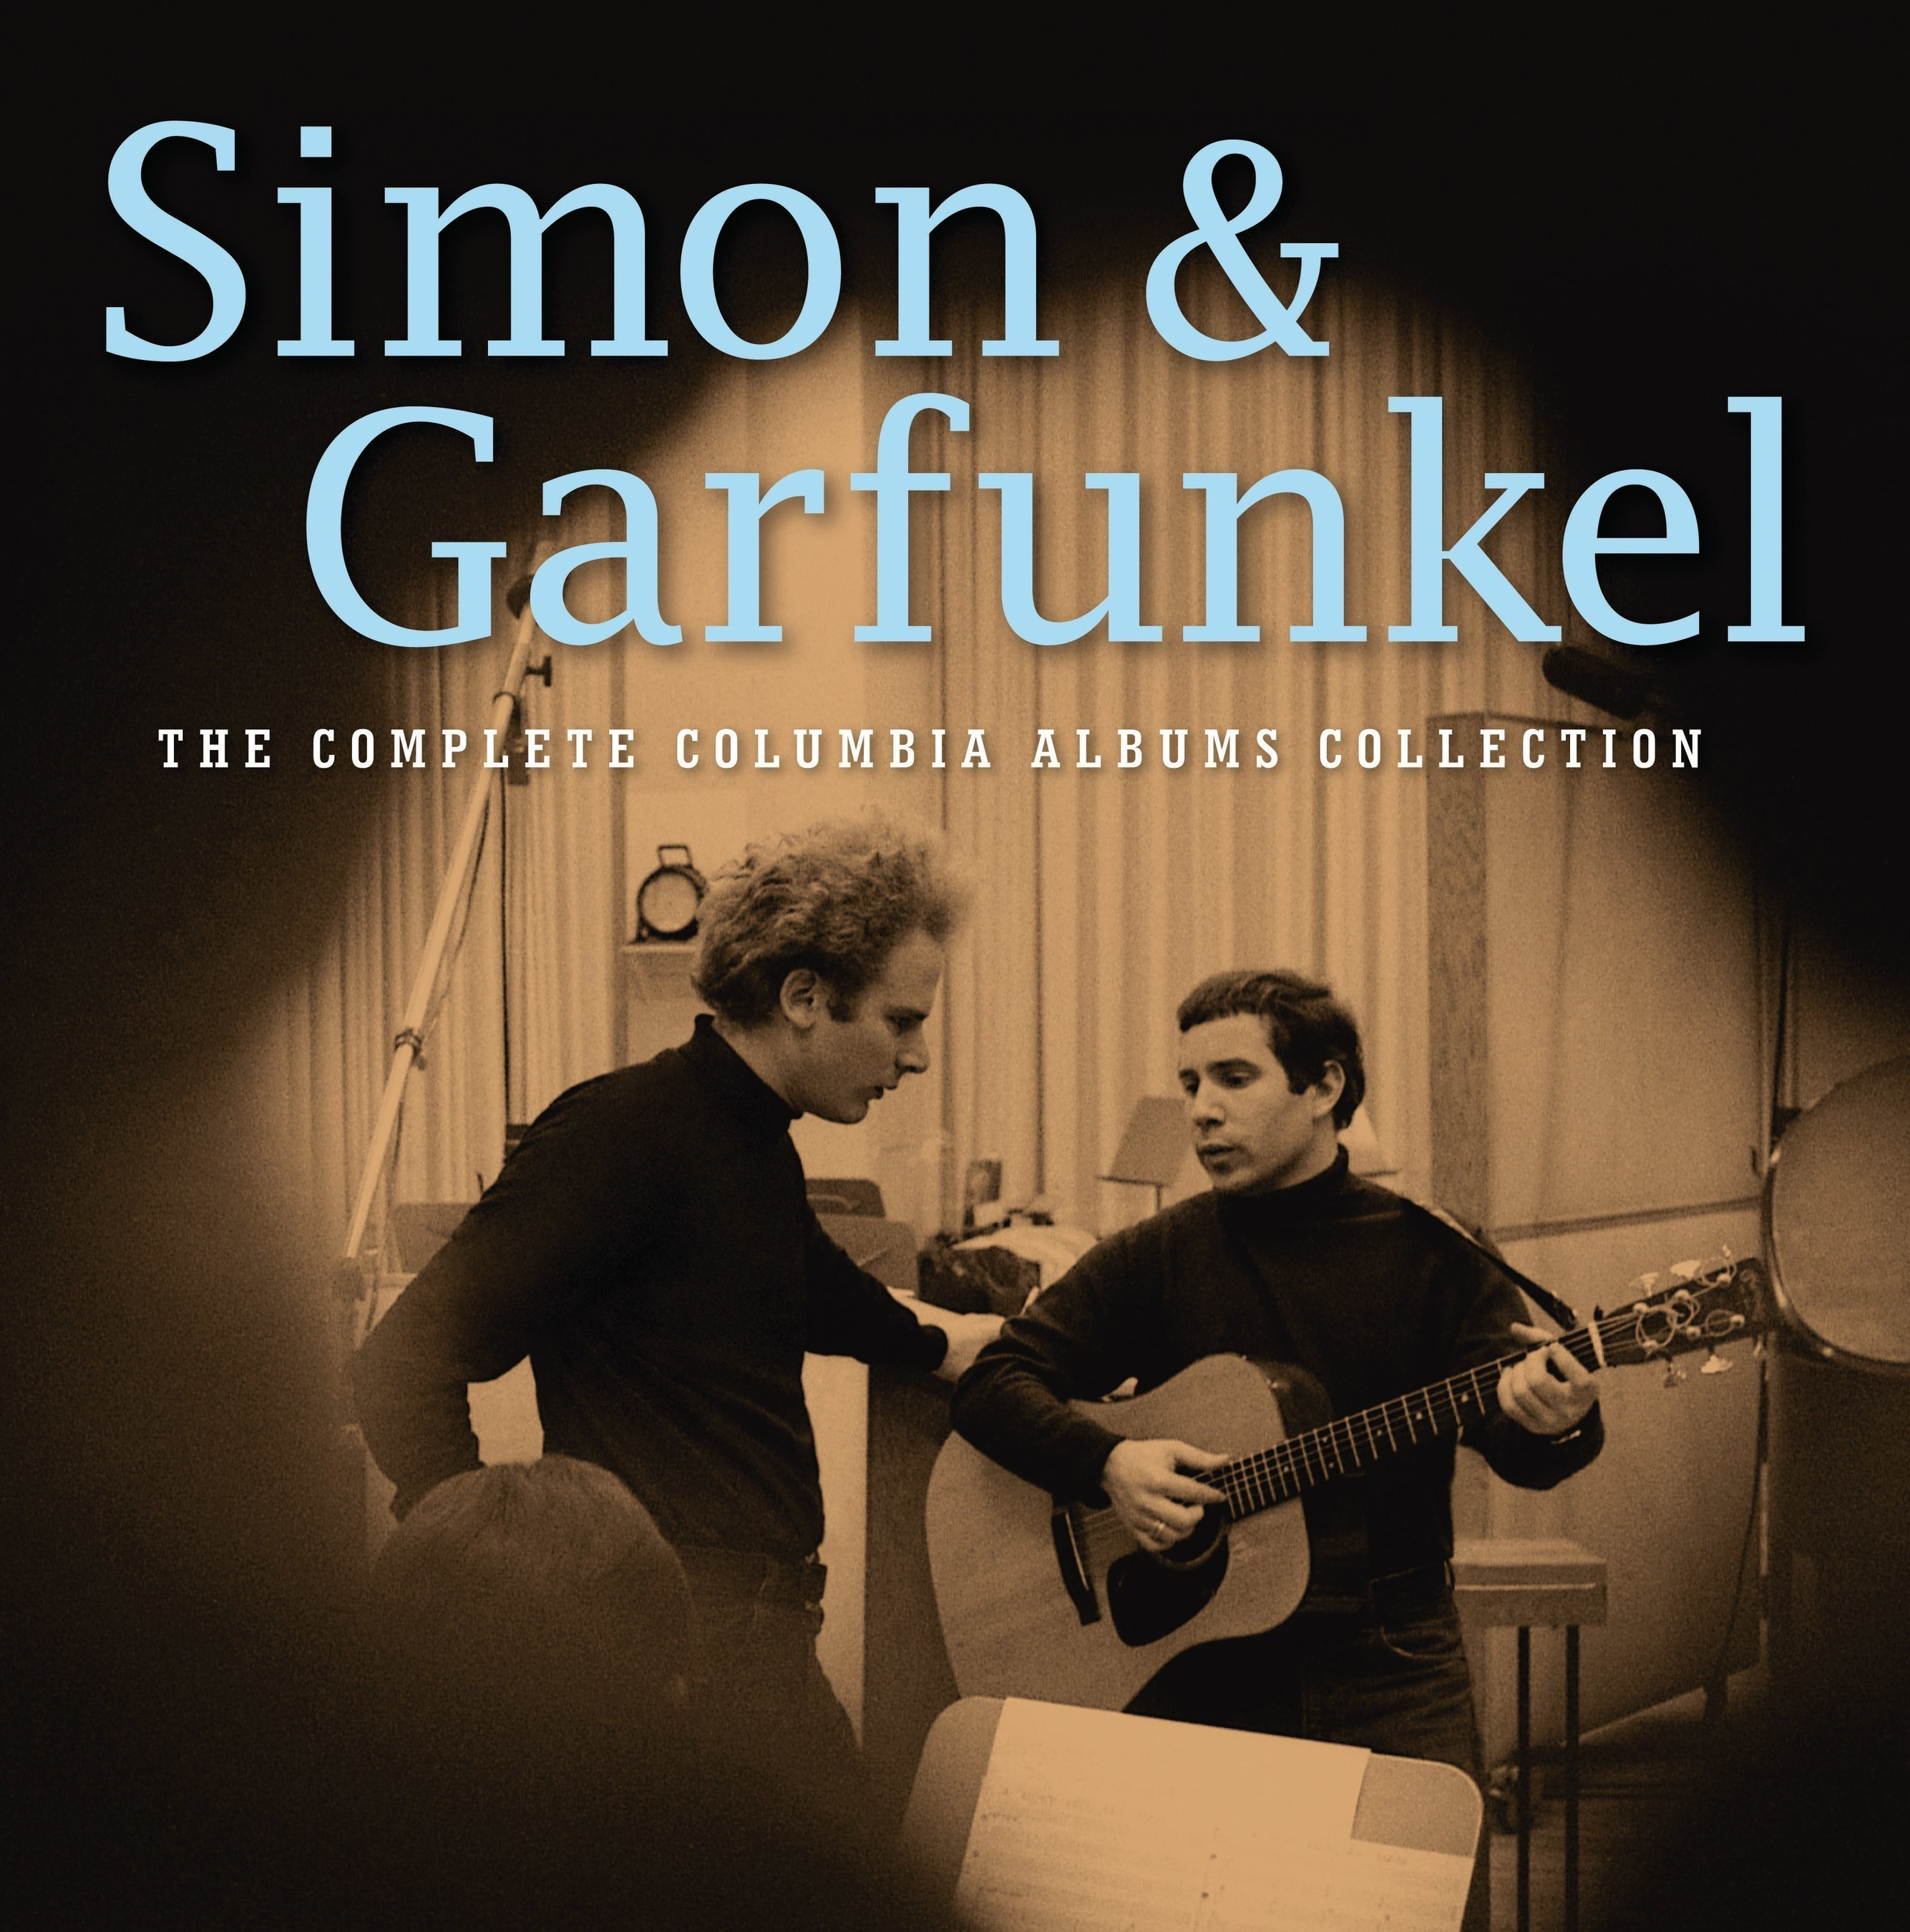 Legacy Recordings Set to Release 'Simon & Garfunkel - The Complete Columbia Albums Collection' on 180gram Audiophile Vinyl and 'Simon & Garfunkel: The Concert in Centr